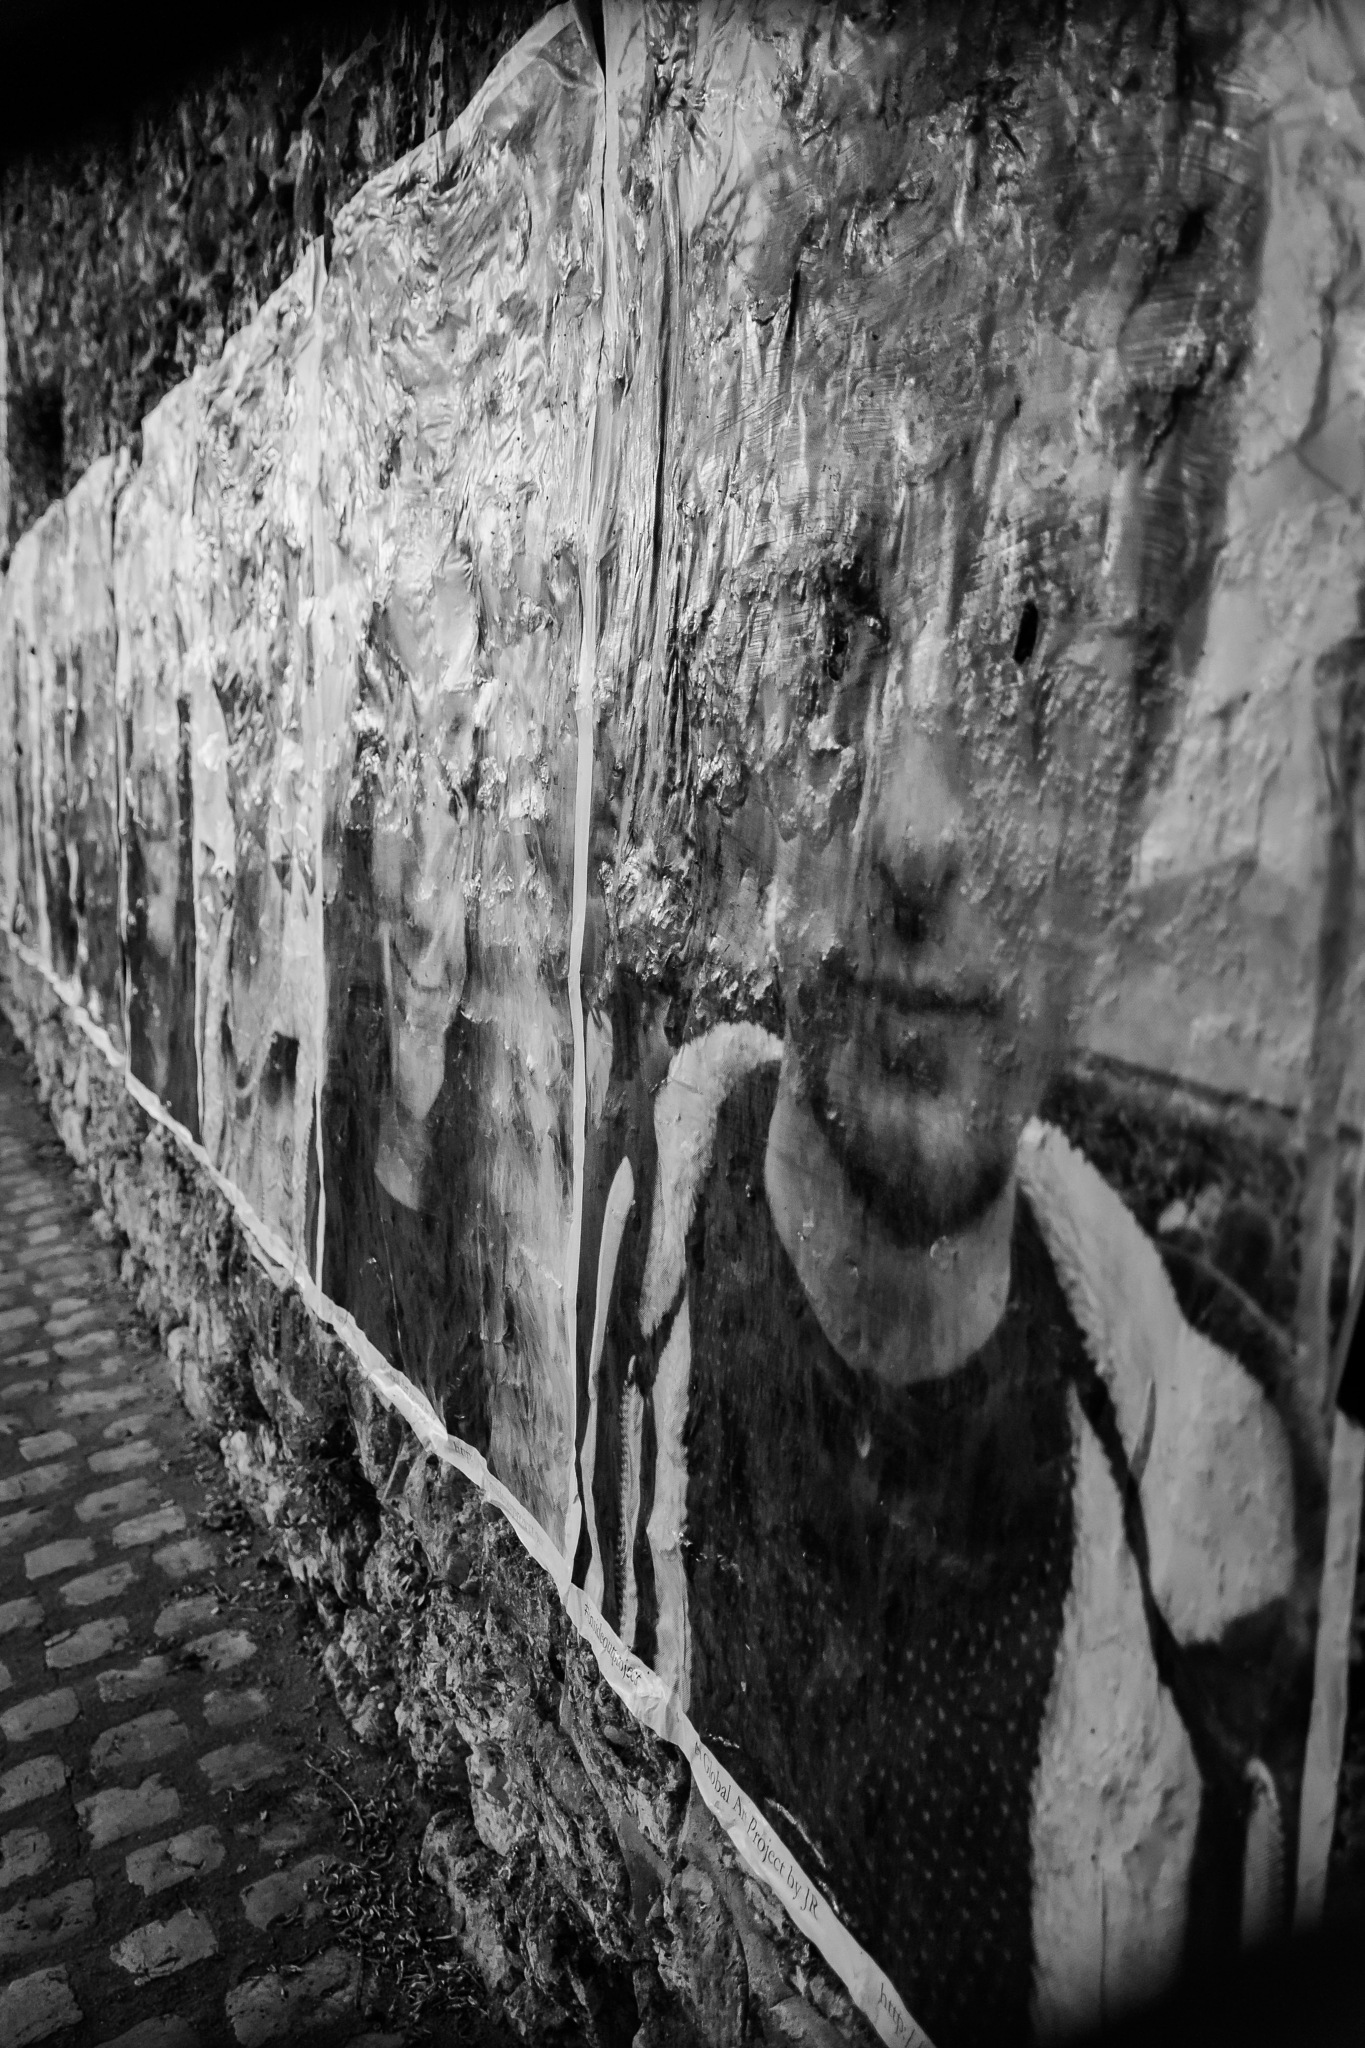 Faces on the wall 2 by Hervé Samson